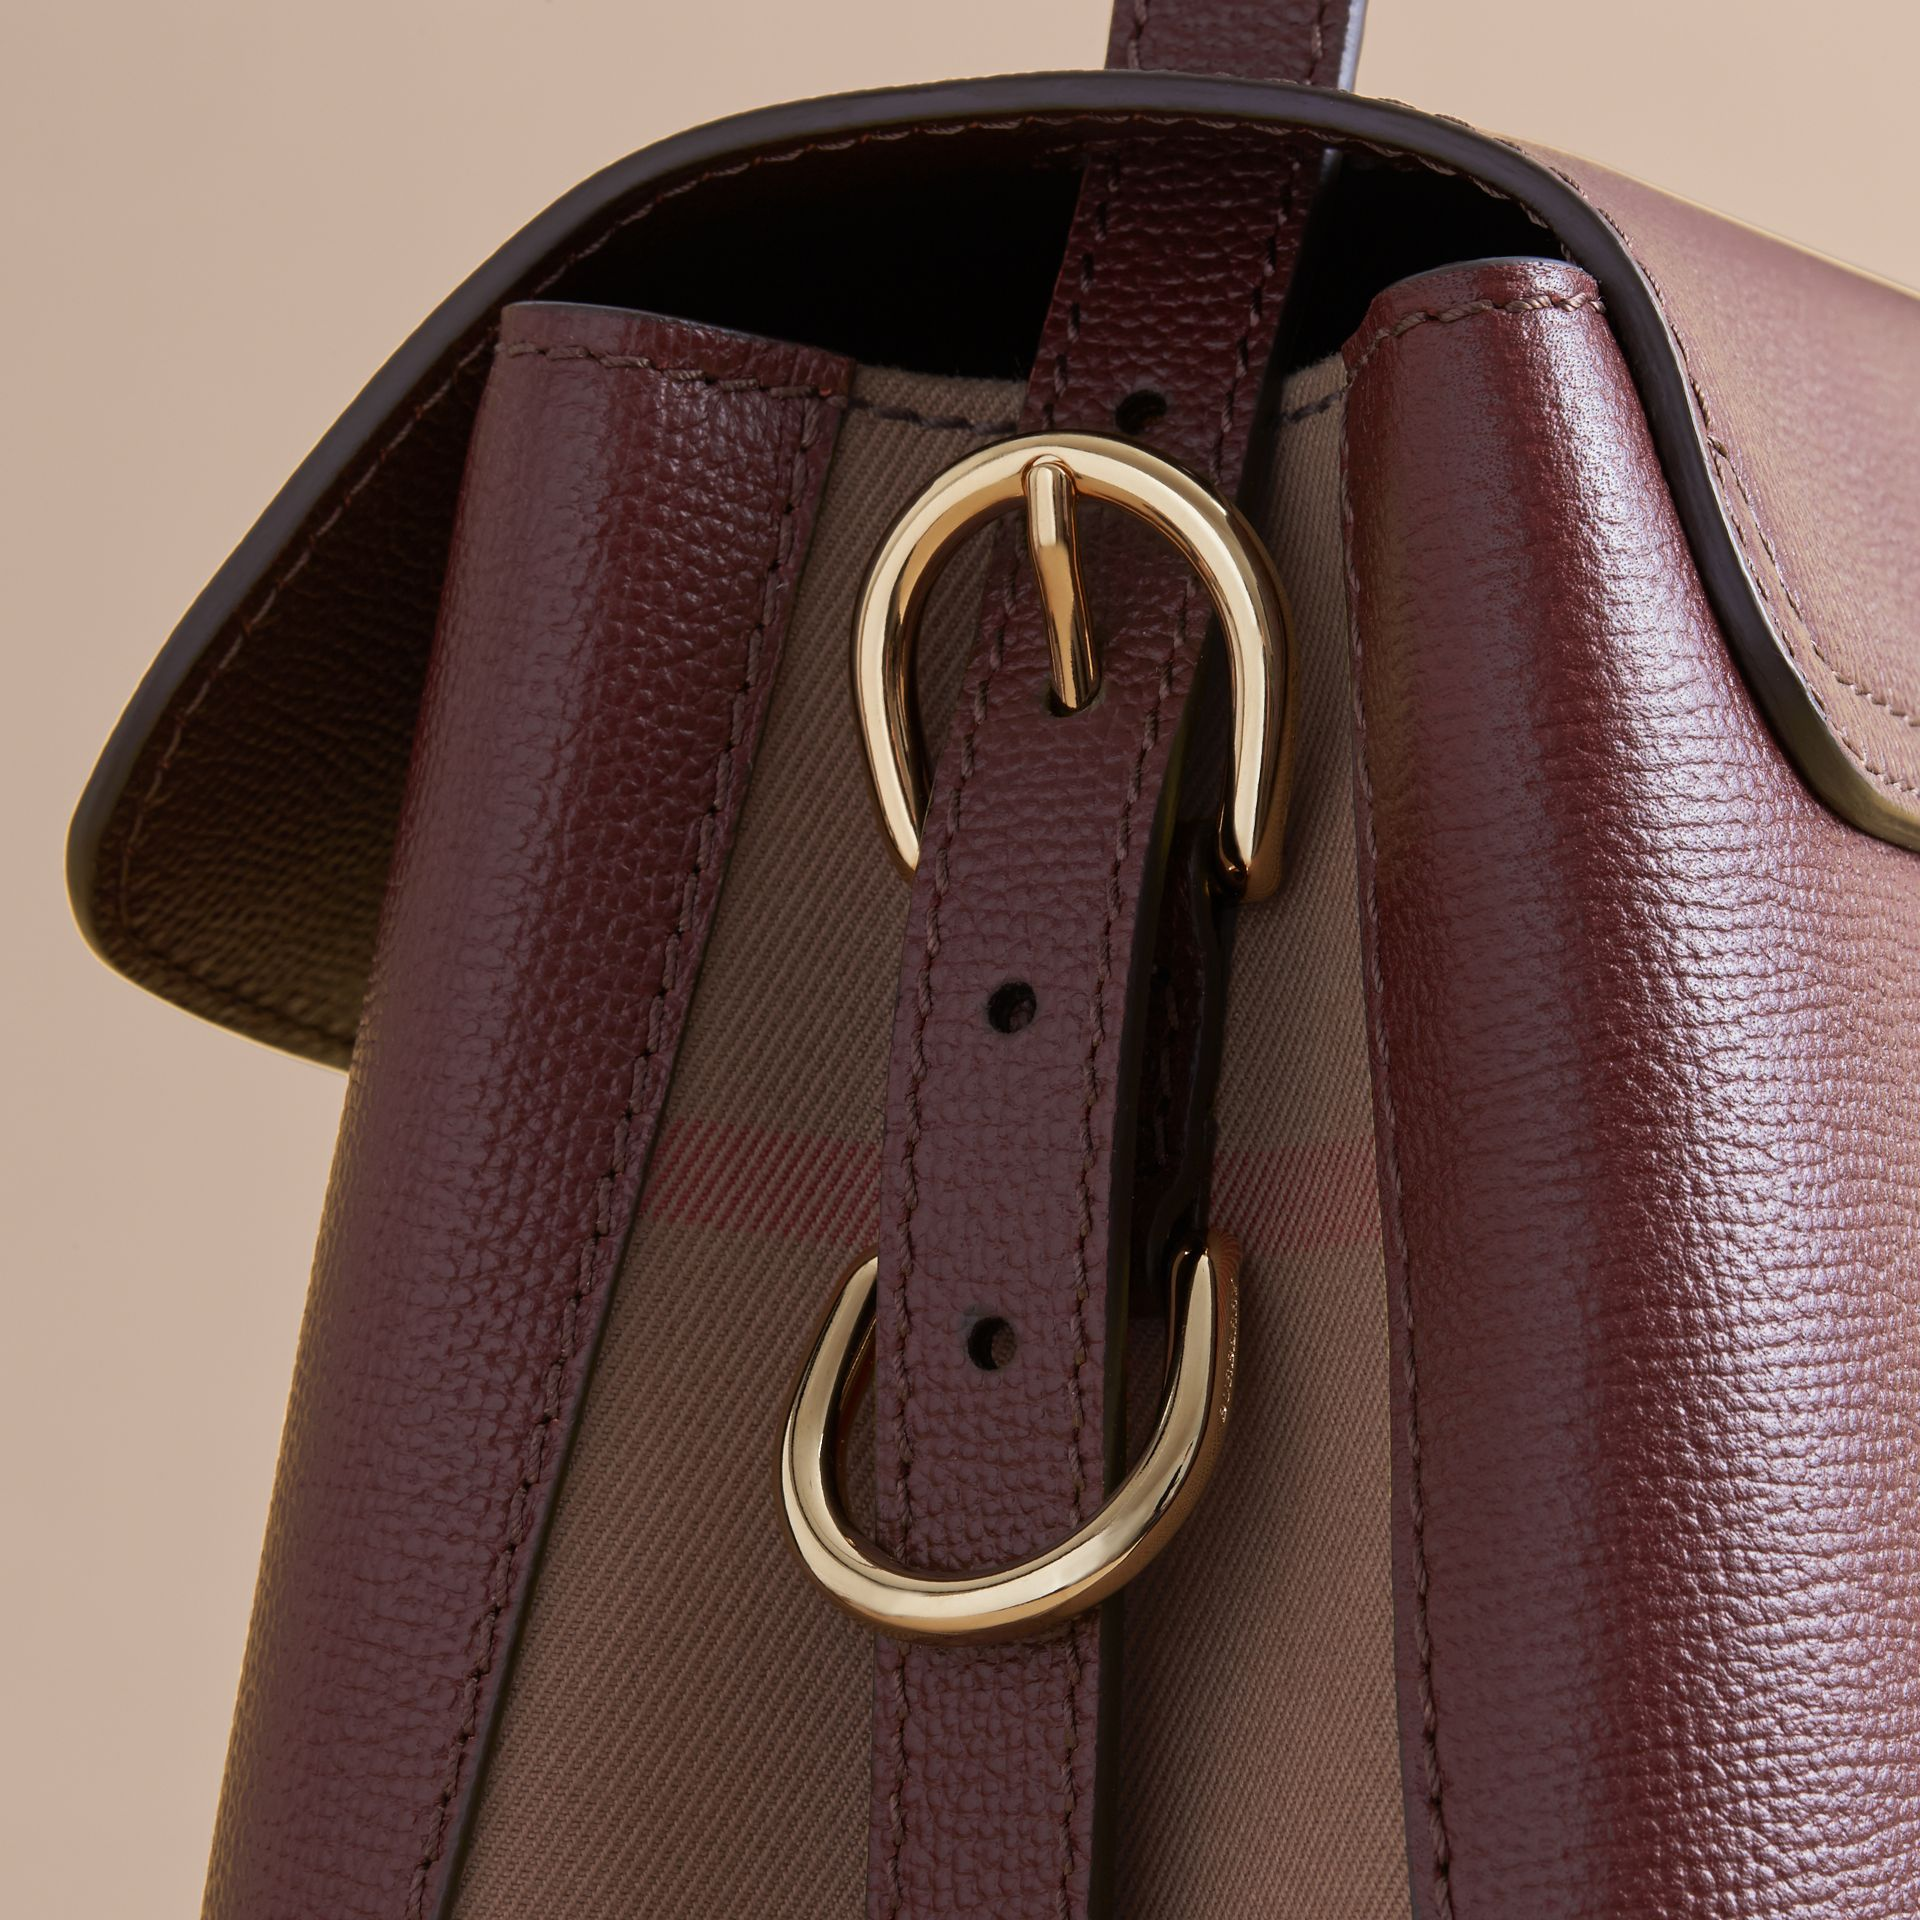 Medium Grainy Leather and House Check Tote Bag in Mahogany Red - Women | Burberry Hong Kong - gallery image 6